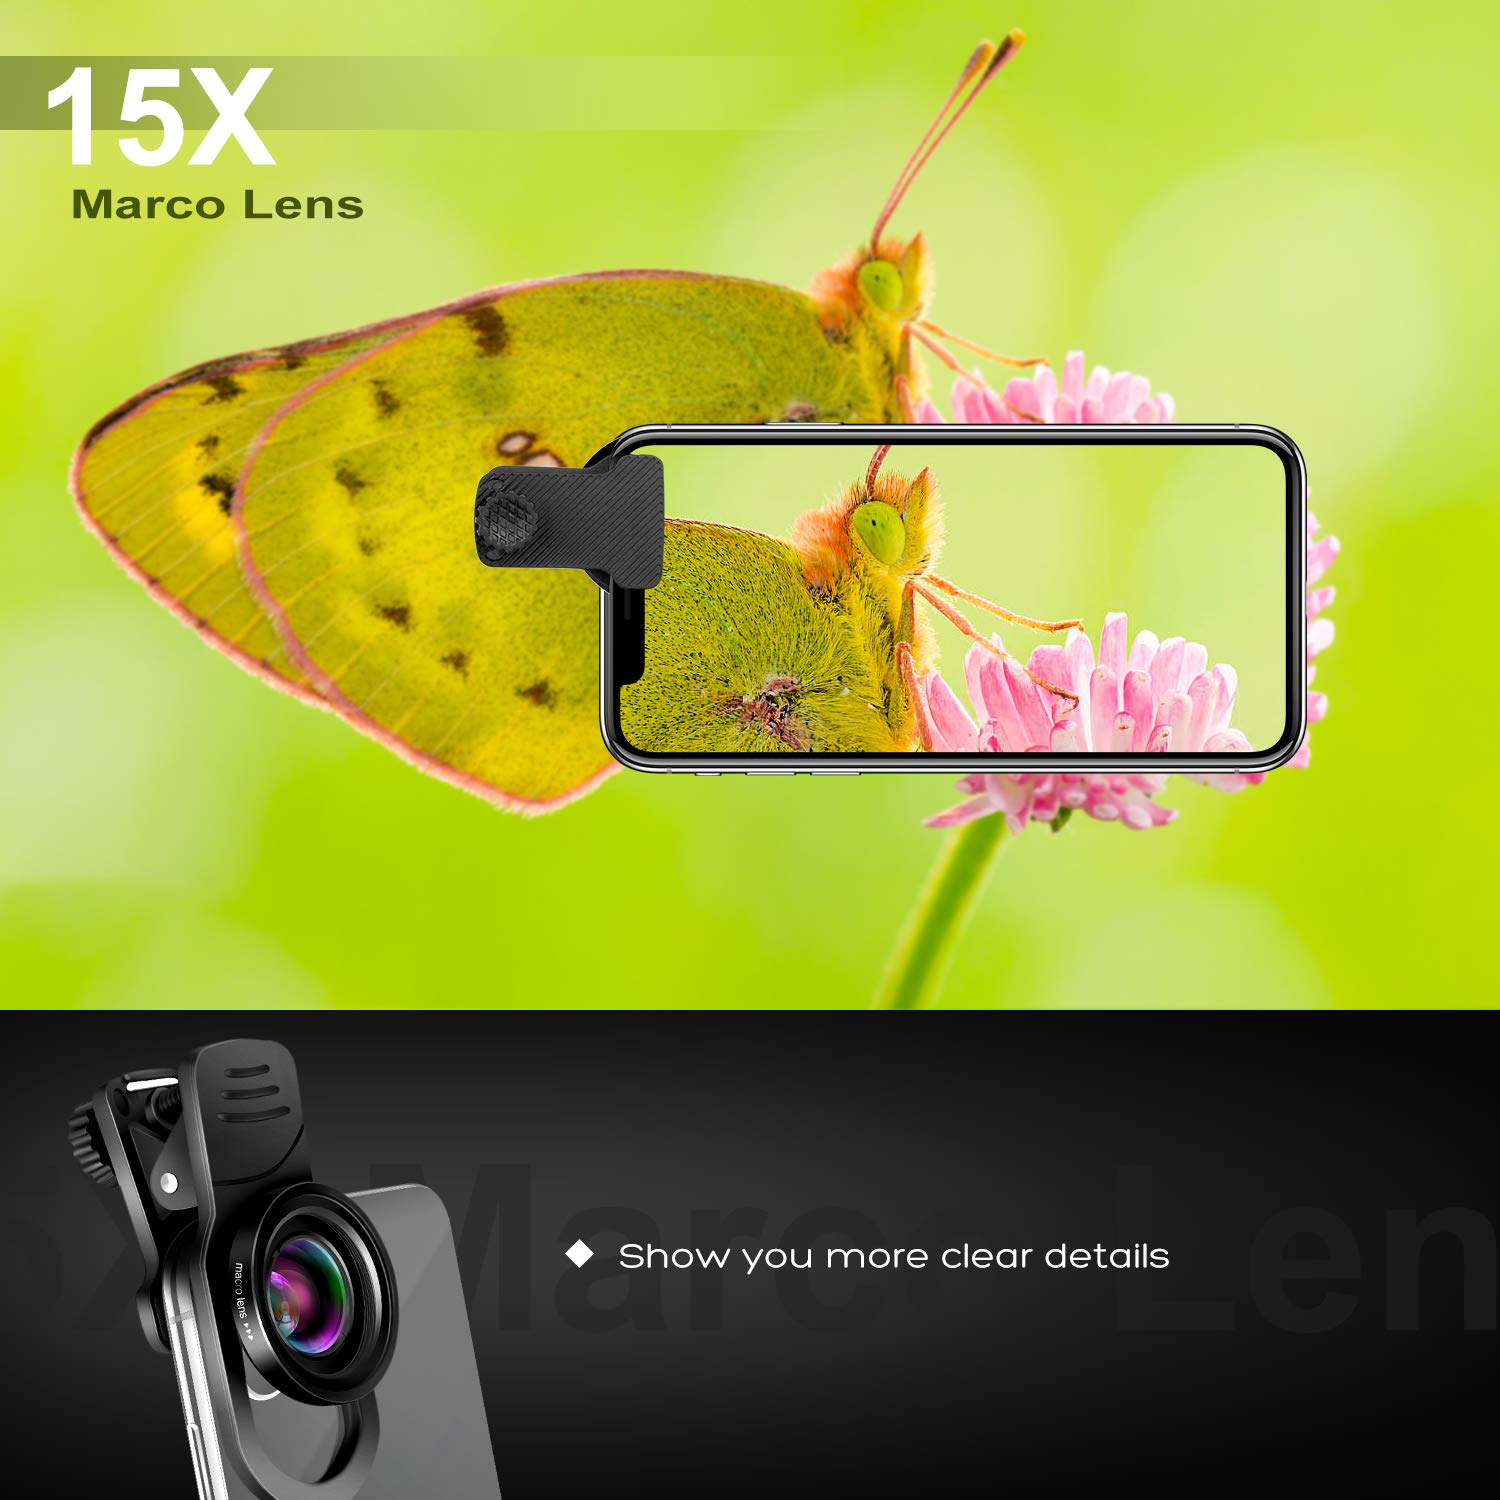 Cell Phone Camera Lens Kit – VIEWOW 4K HD 7 Optical Glasses 15X Macro 0.45X Wide Angle Phone Lens Kit with LED Light and Travel Case, Compatible with iPhone X/XS/8/7 Plus Samsung Pixel by VIEWOW (Image #6)